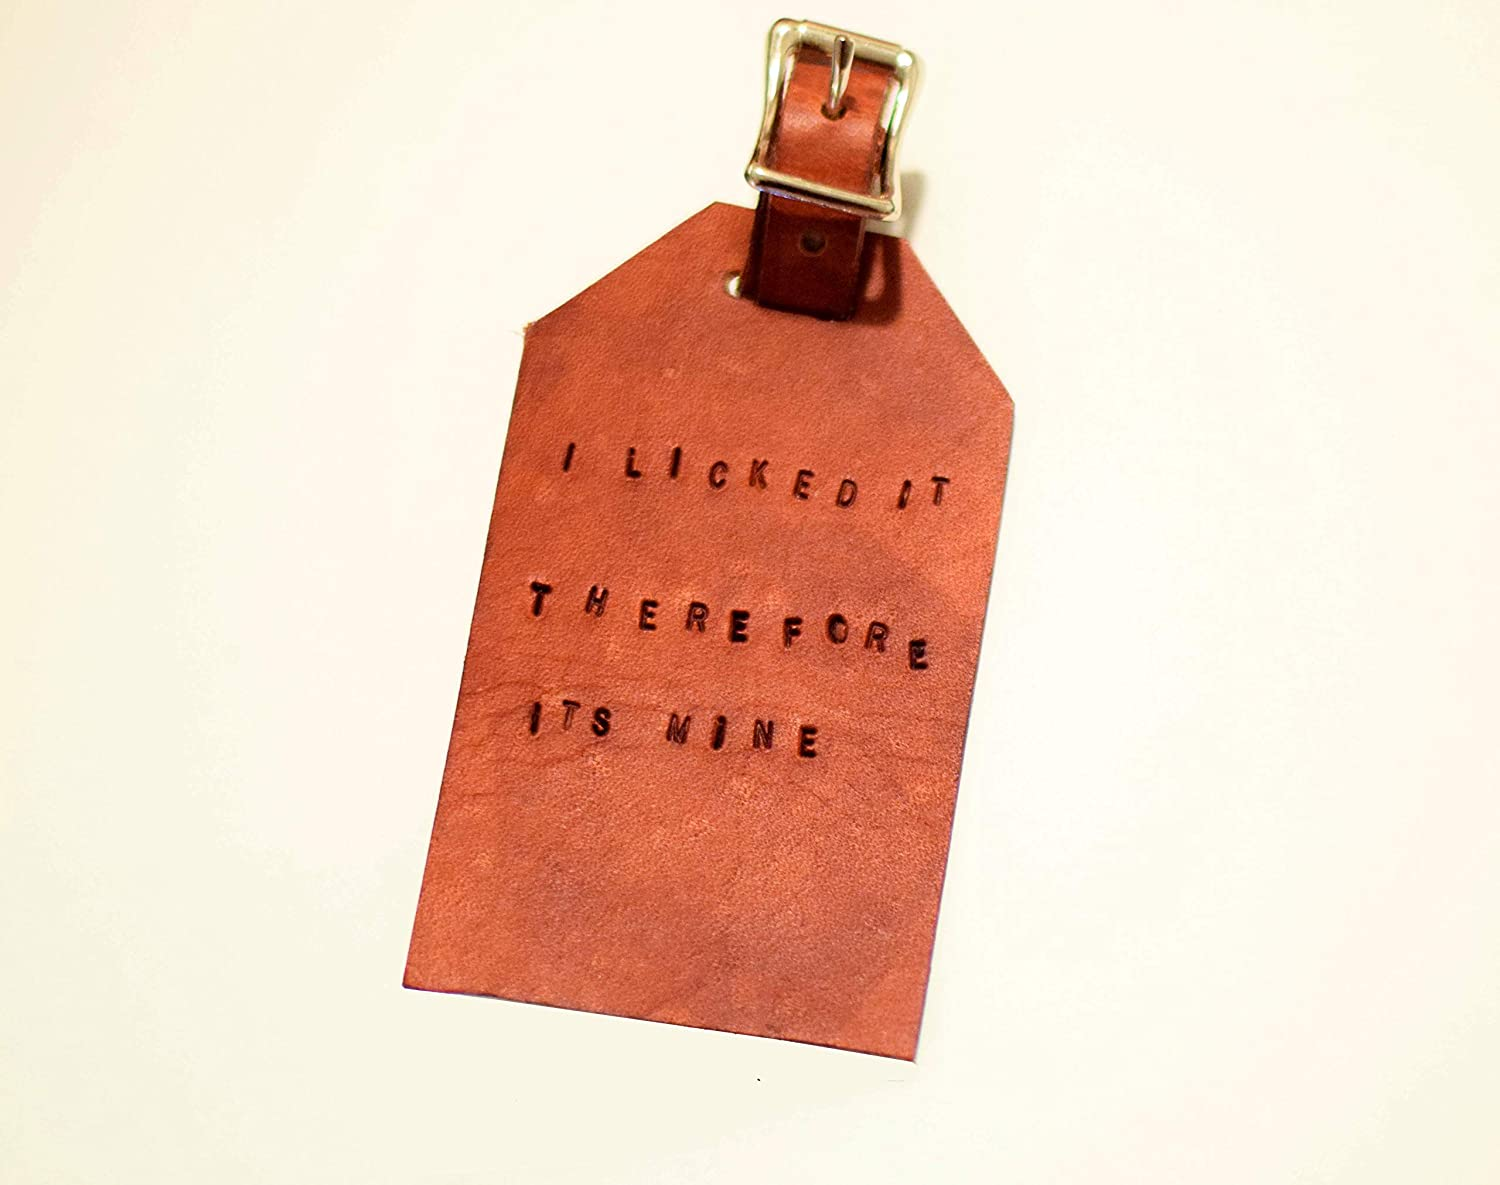 Funny Genuine Leather Luggage Tag by Tiny Backpacks - I Licked It Therefore Its Mine